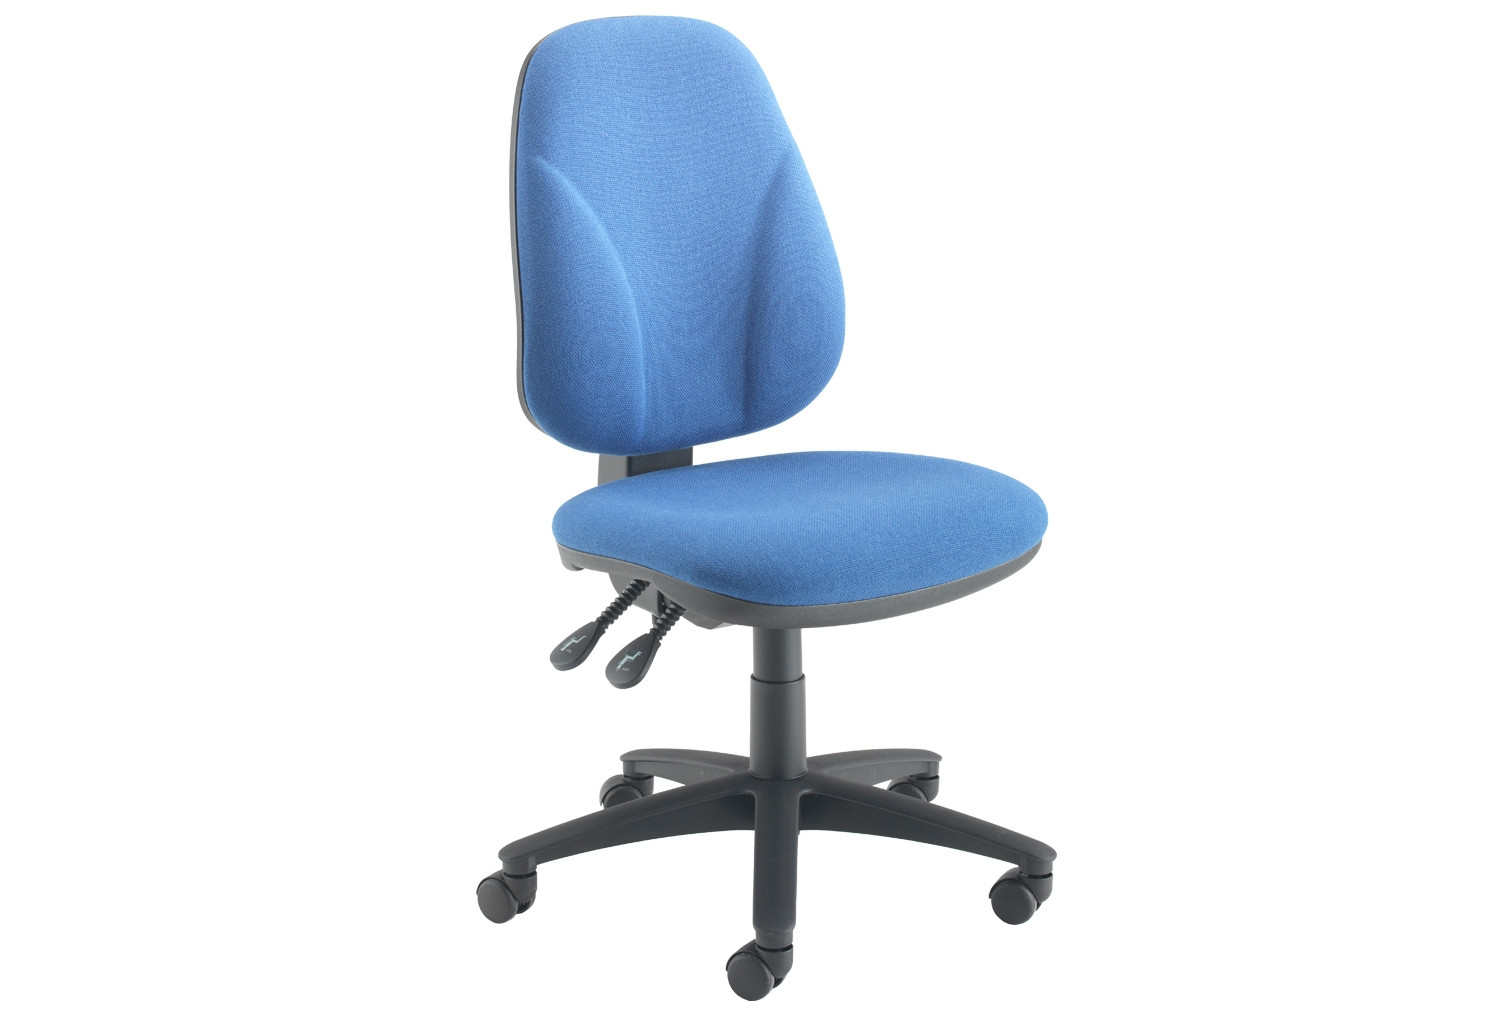 Next-Day Notion High Back Operator Chair